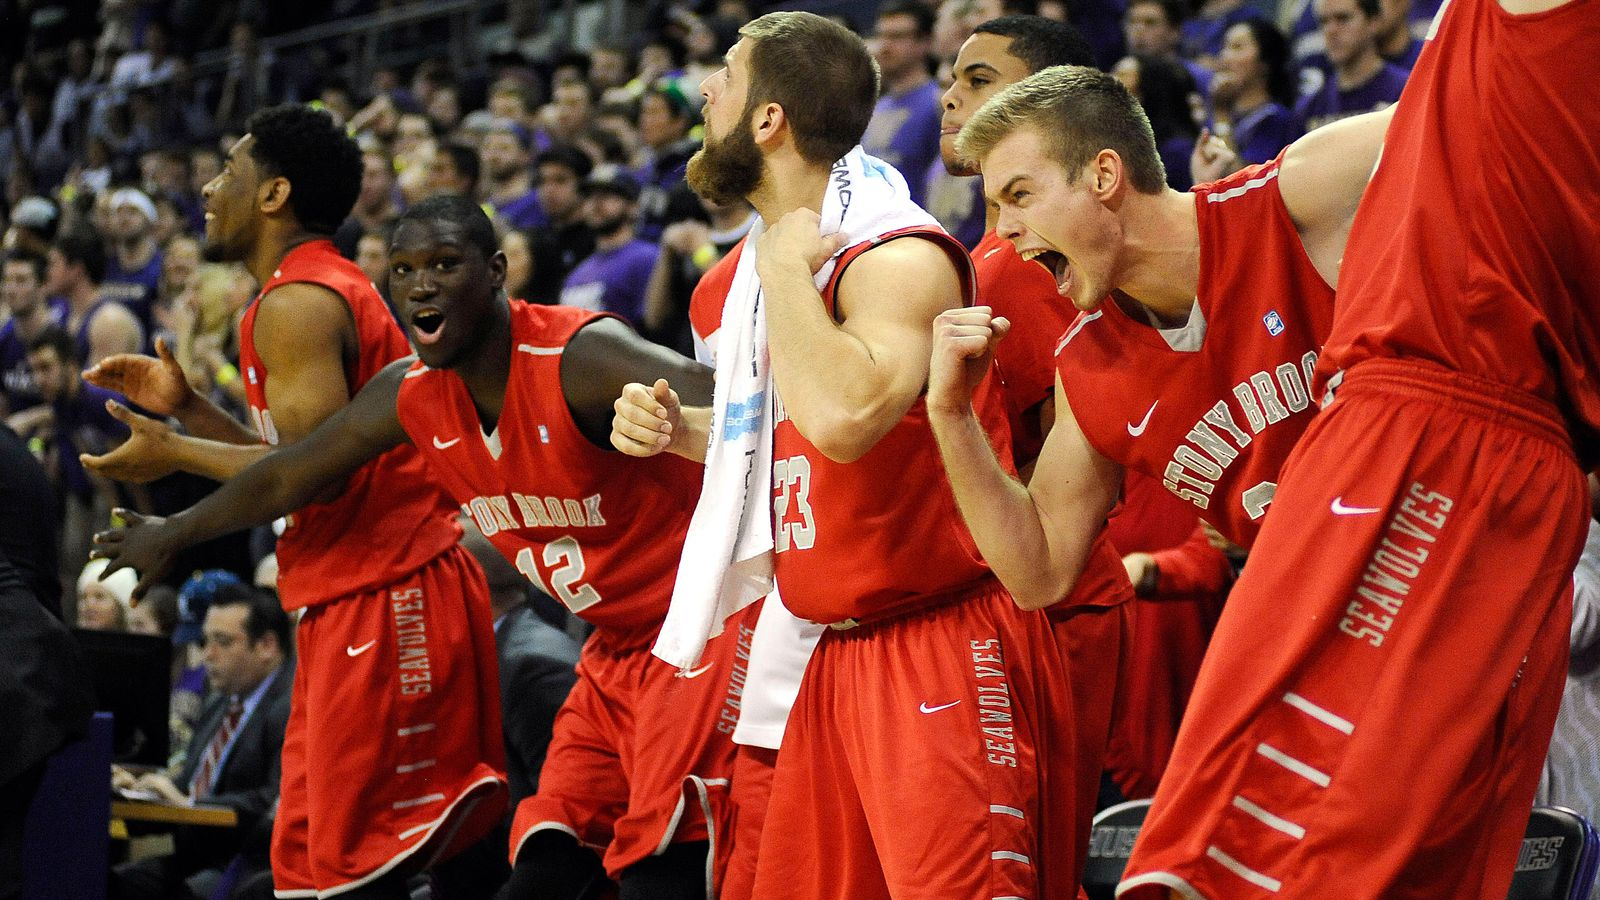 kentucky college basketball scores giants packers line